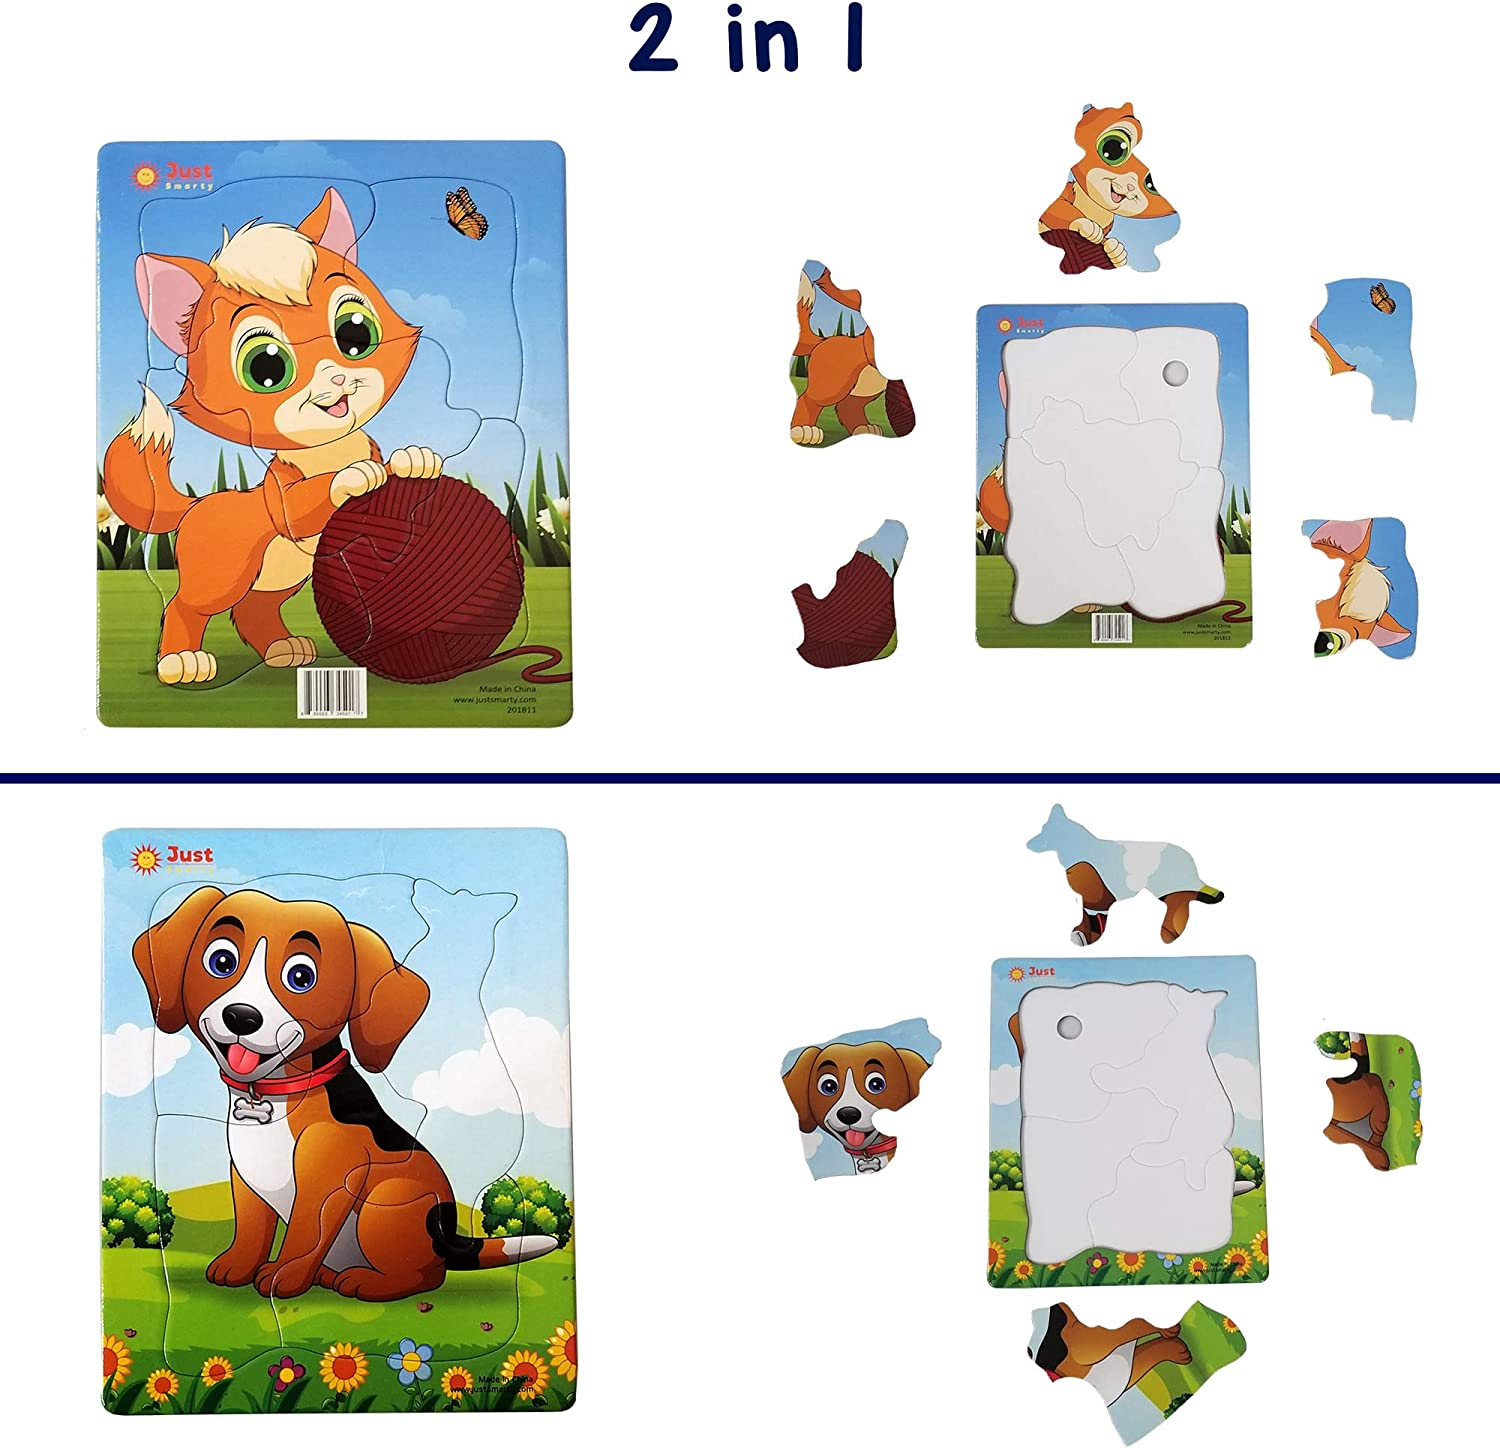 """Just Smarty Beginner Preschool Jigsaw Puzzles Set of 2 for Kids Ages 3, 4, 5 with Fun Shapes and 6.5""""x8"""" Tray, 4 and 5 Pieces. Fun Learning Educational Toy for Toddlers Boys Girls at Home. Level 1"""